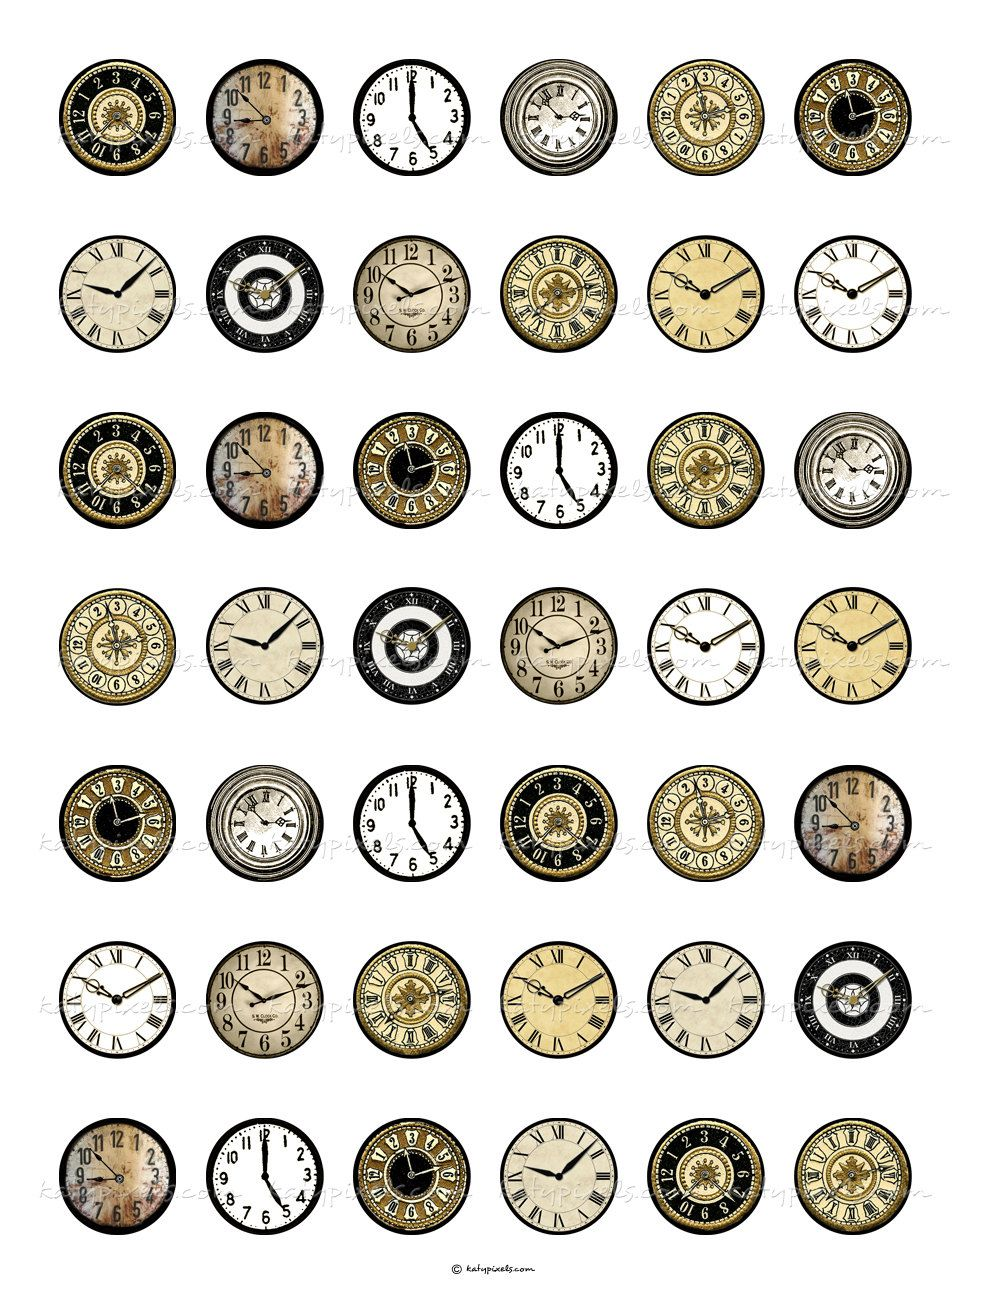 Vintage Clock Faces 1 inch Round Digital Collage ...